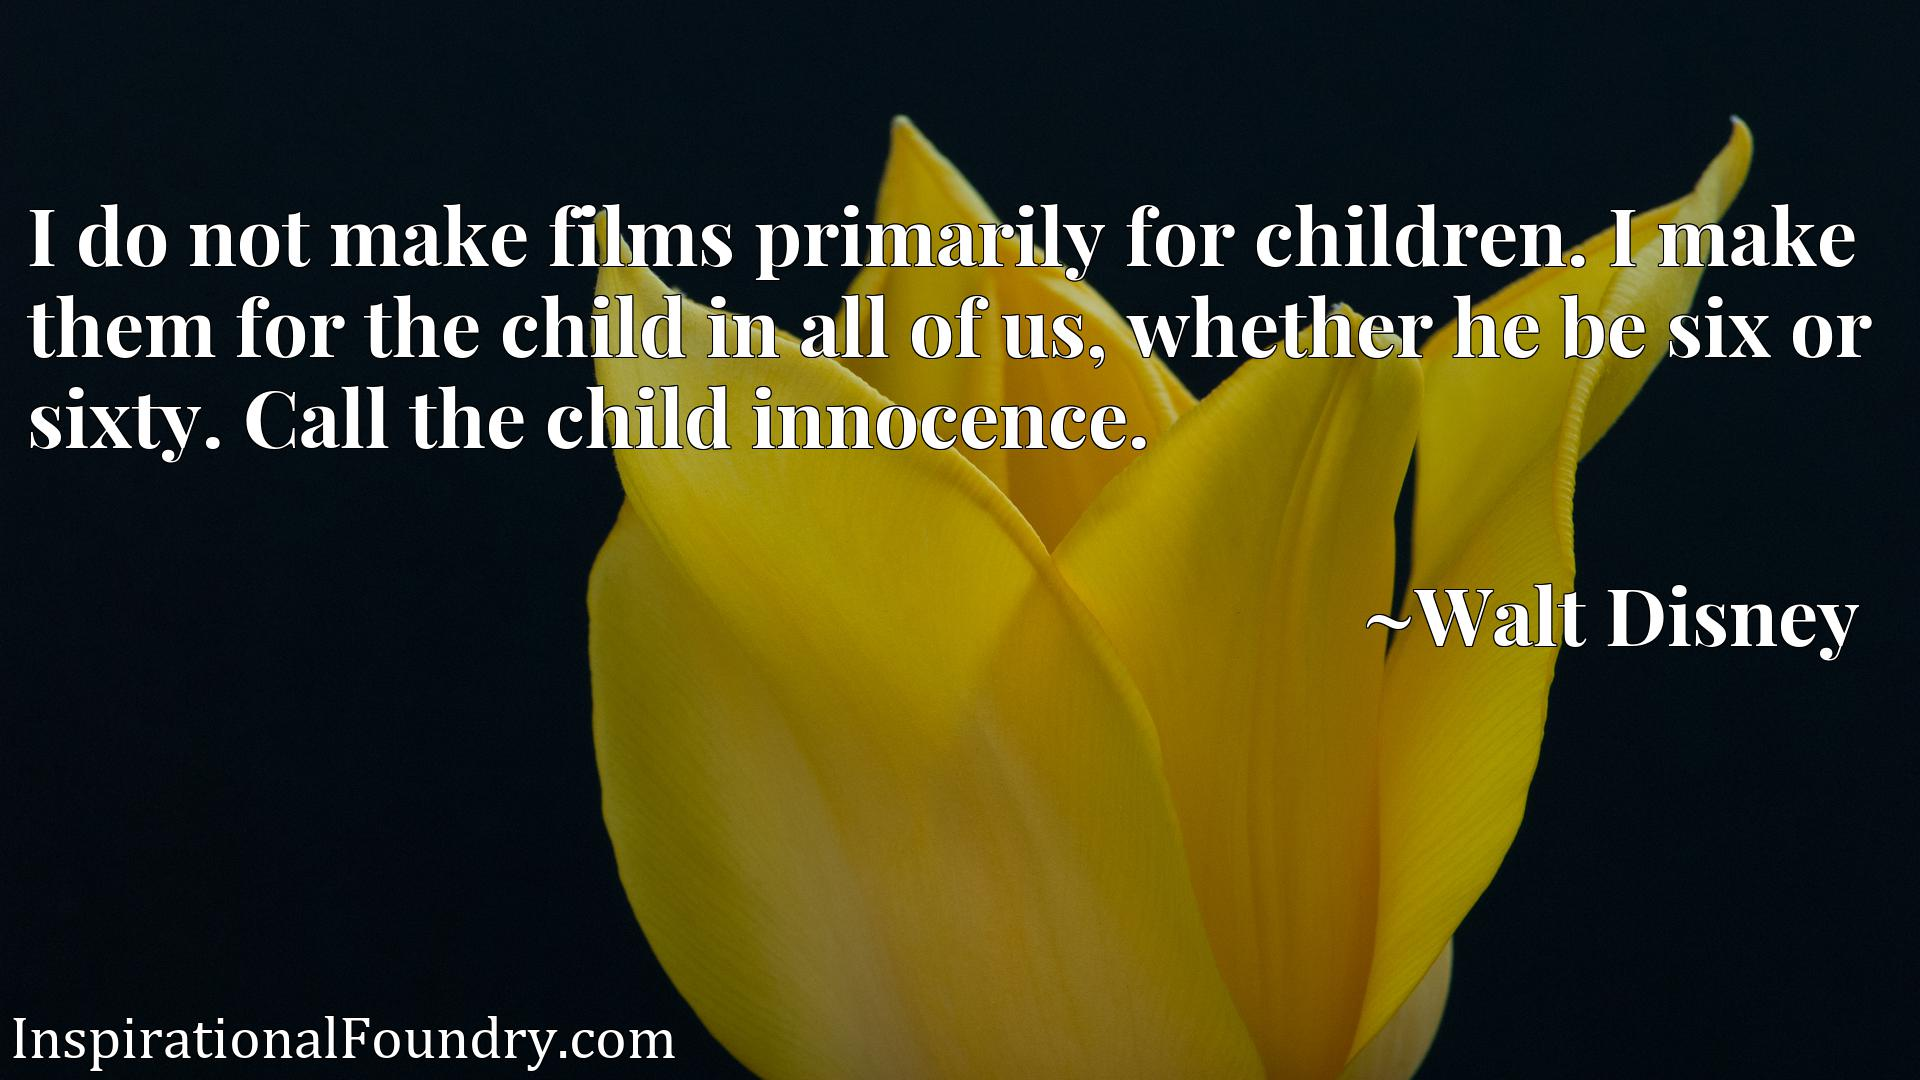 Quote Picture :I do not make films primarily for children. I make them for the child in all of us, whether he be six or sixty. Call the child innocence.